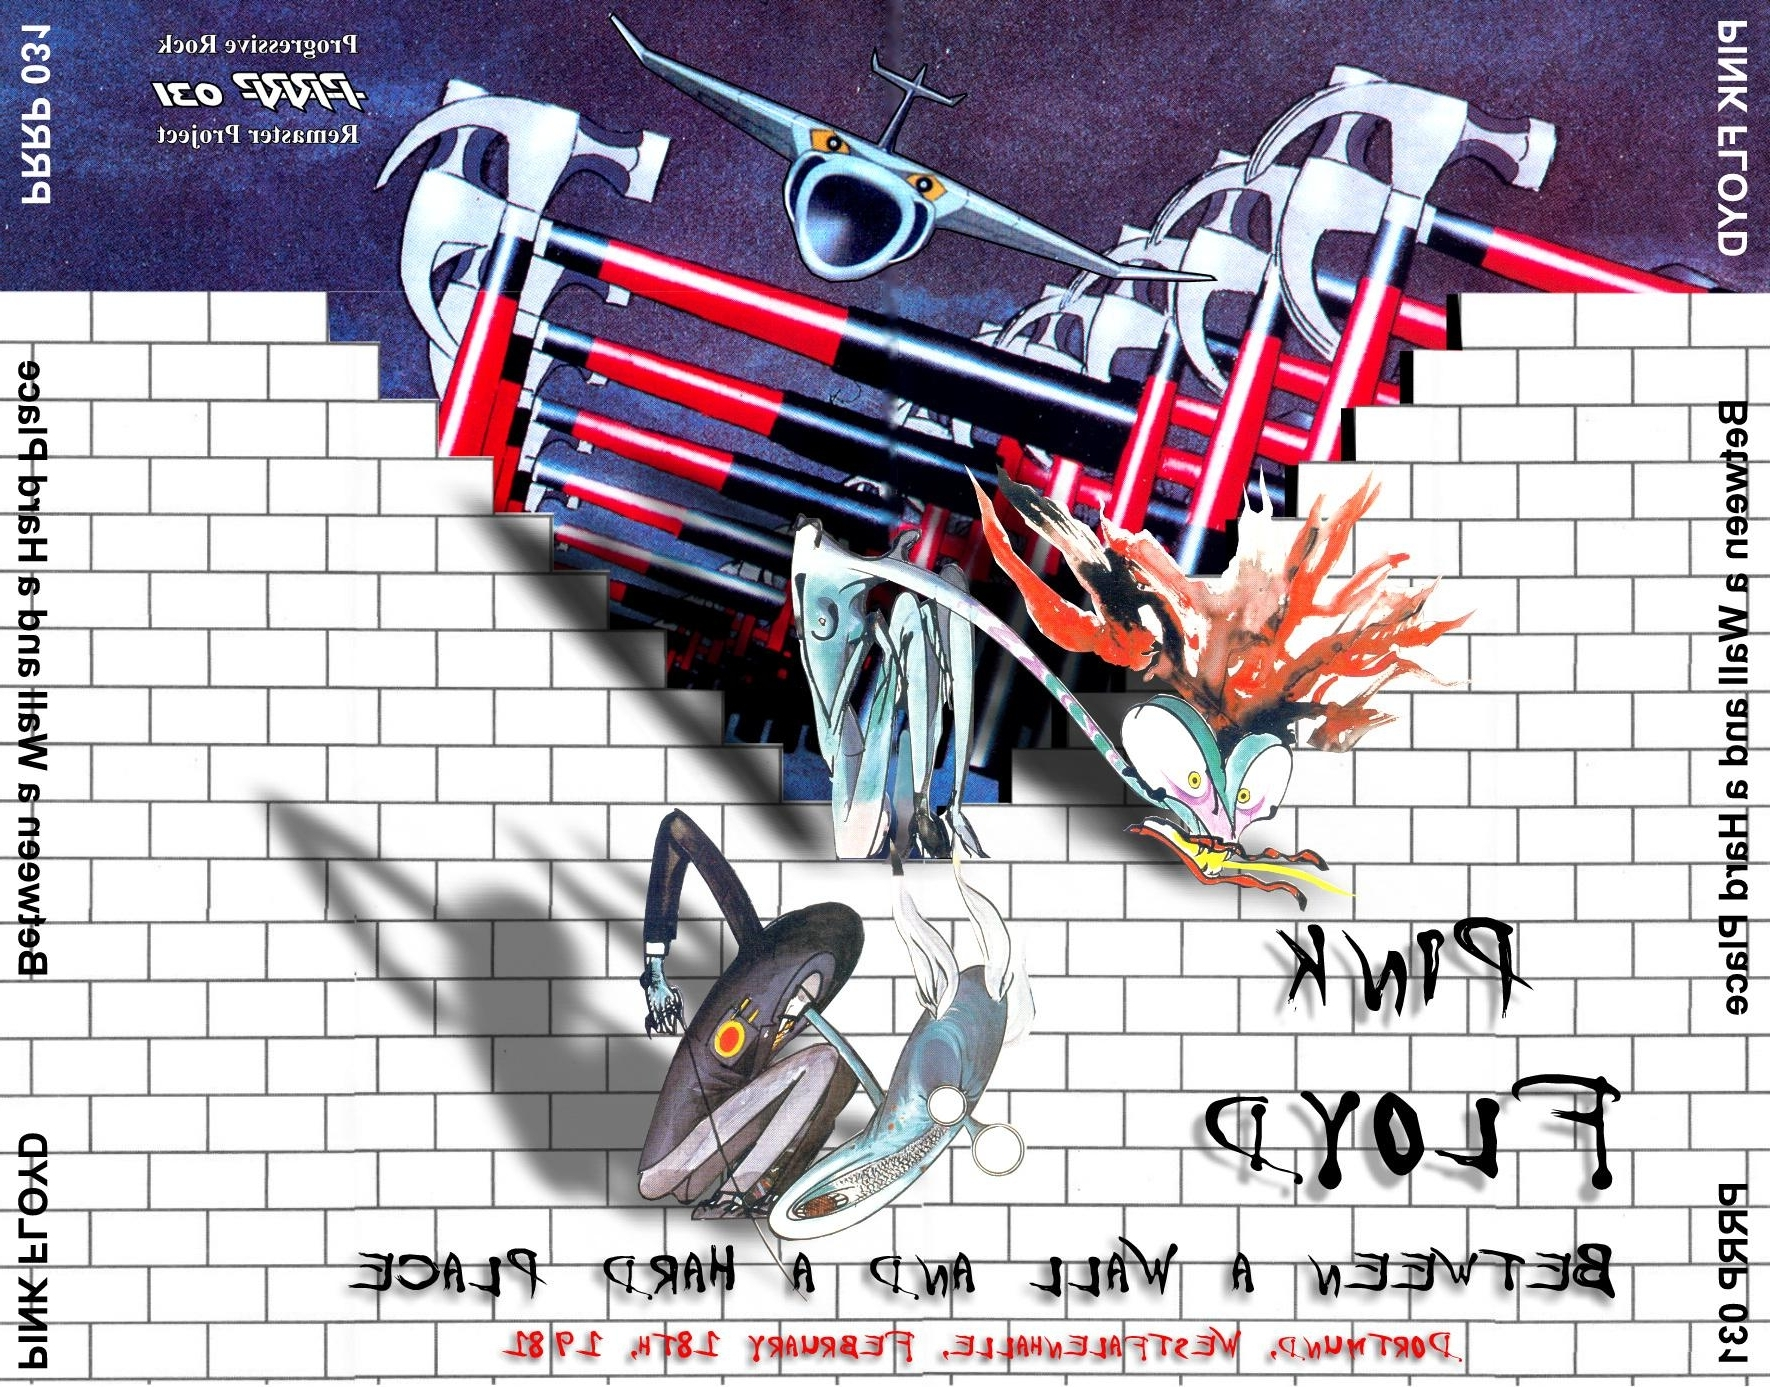 The International Echoes Hub – Lossless Studio And Concert Throughout Well Known Pink Floyd The Wall Art (Gallery 16 of 20)